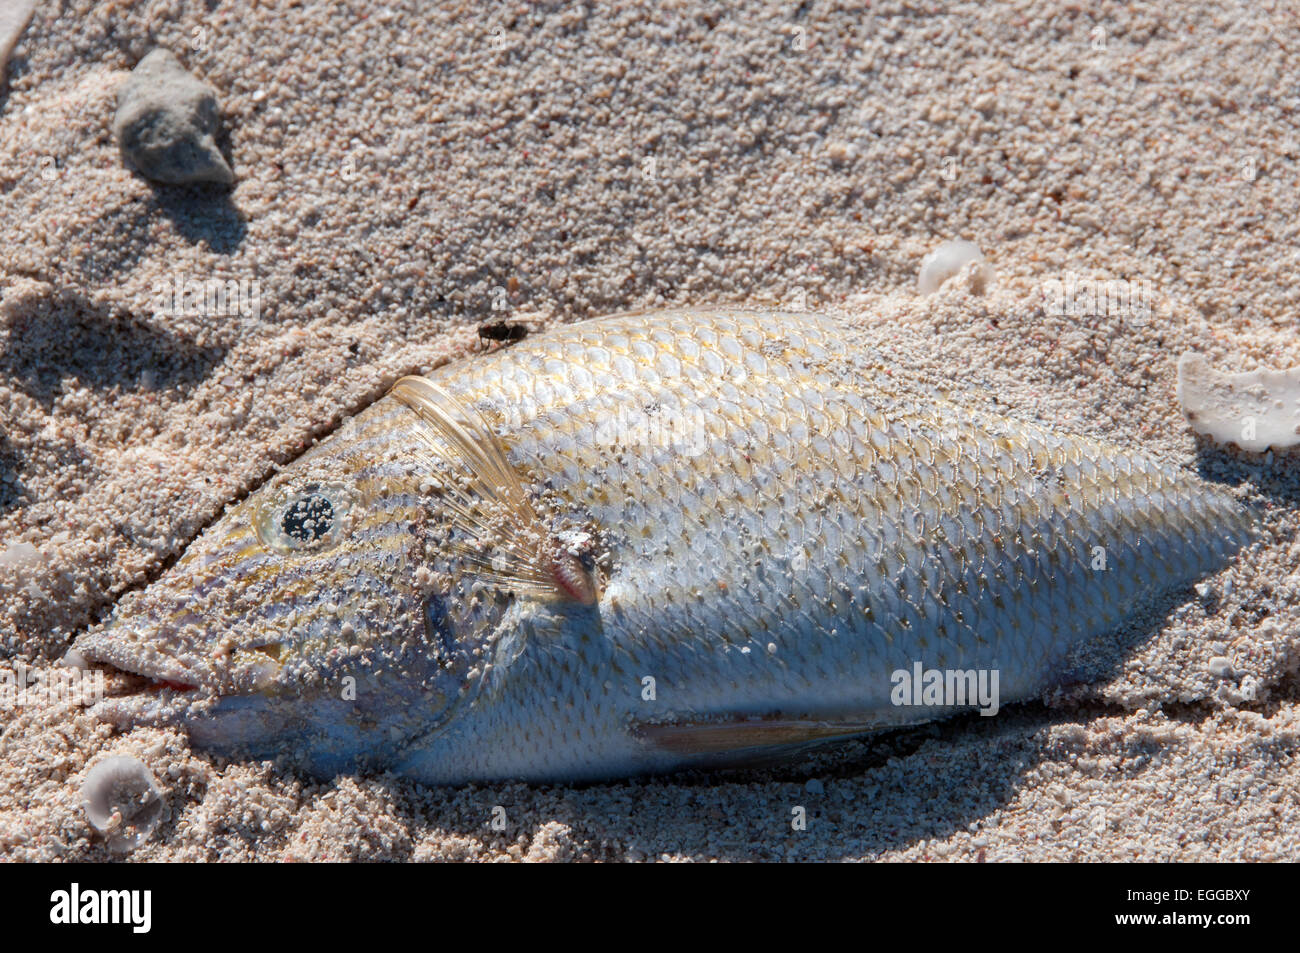 Dead fish - Stock Image